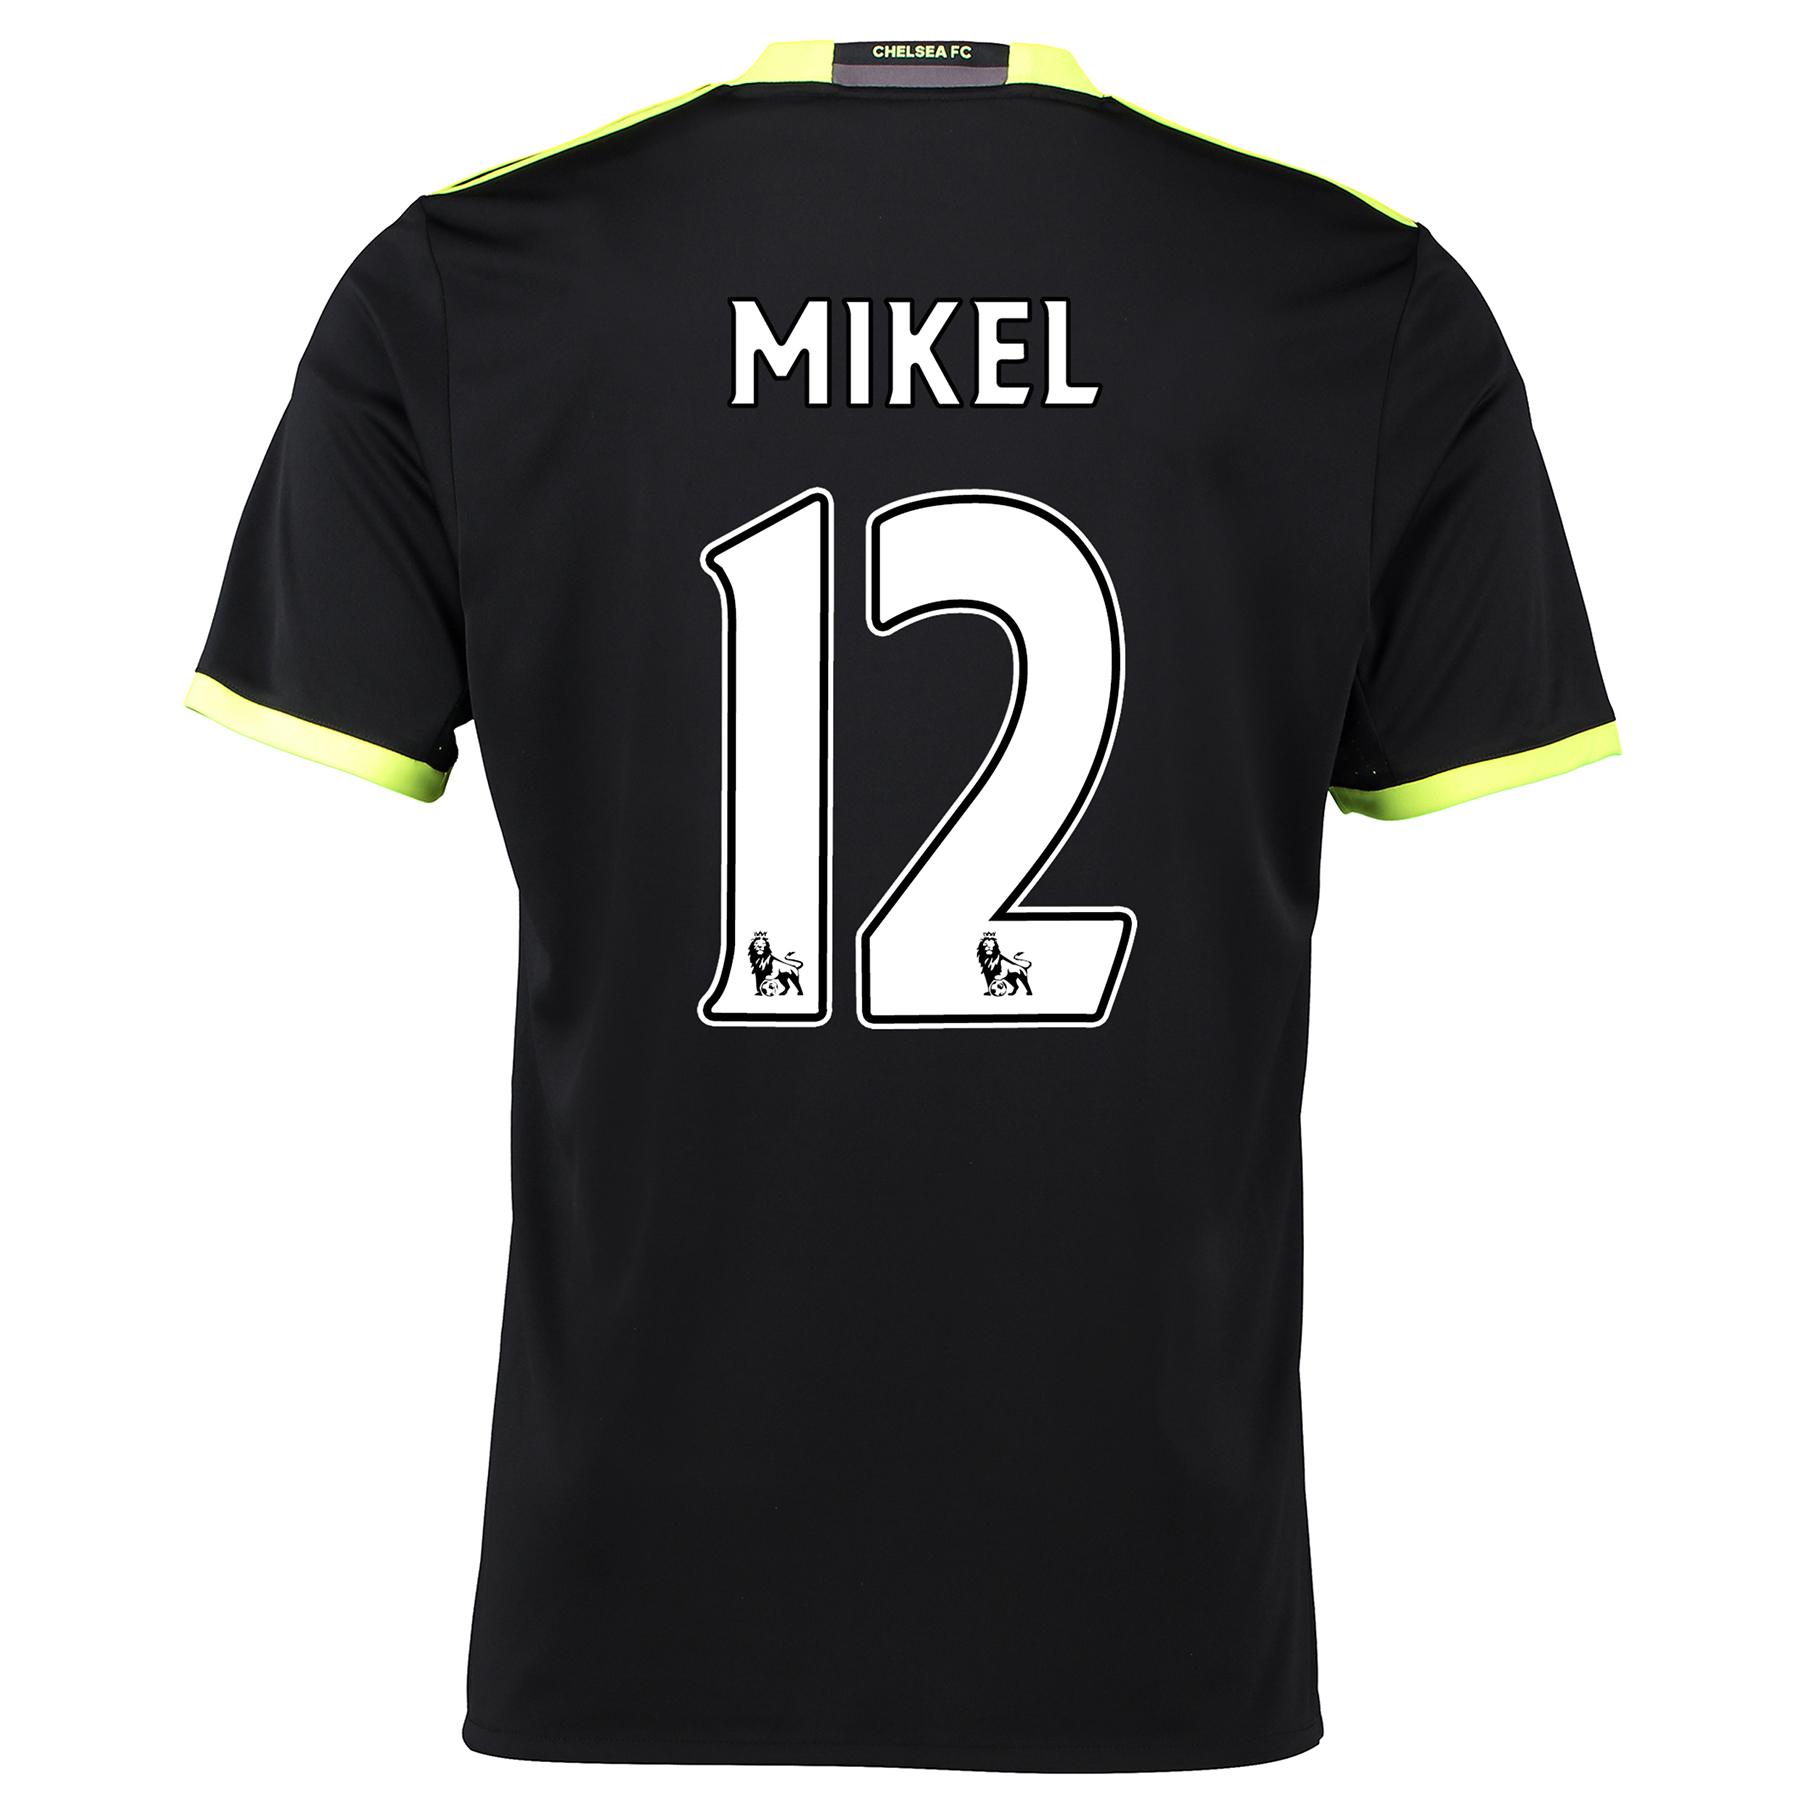 Chelsea Away Shirt 16-17 with Mikel 12 printing